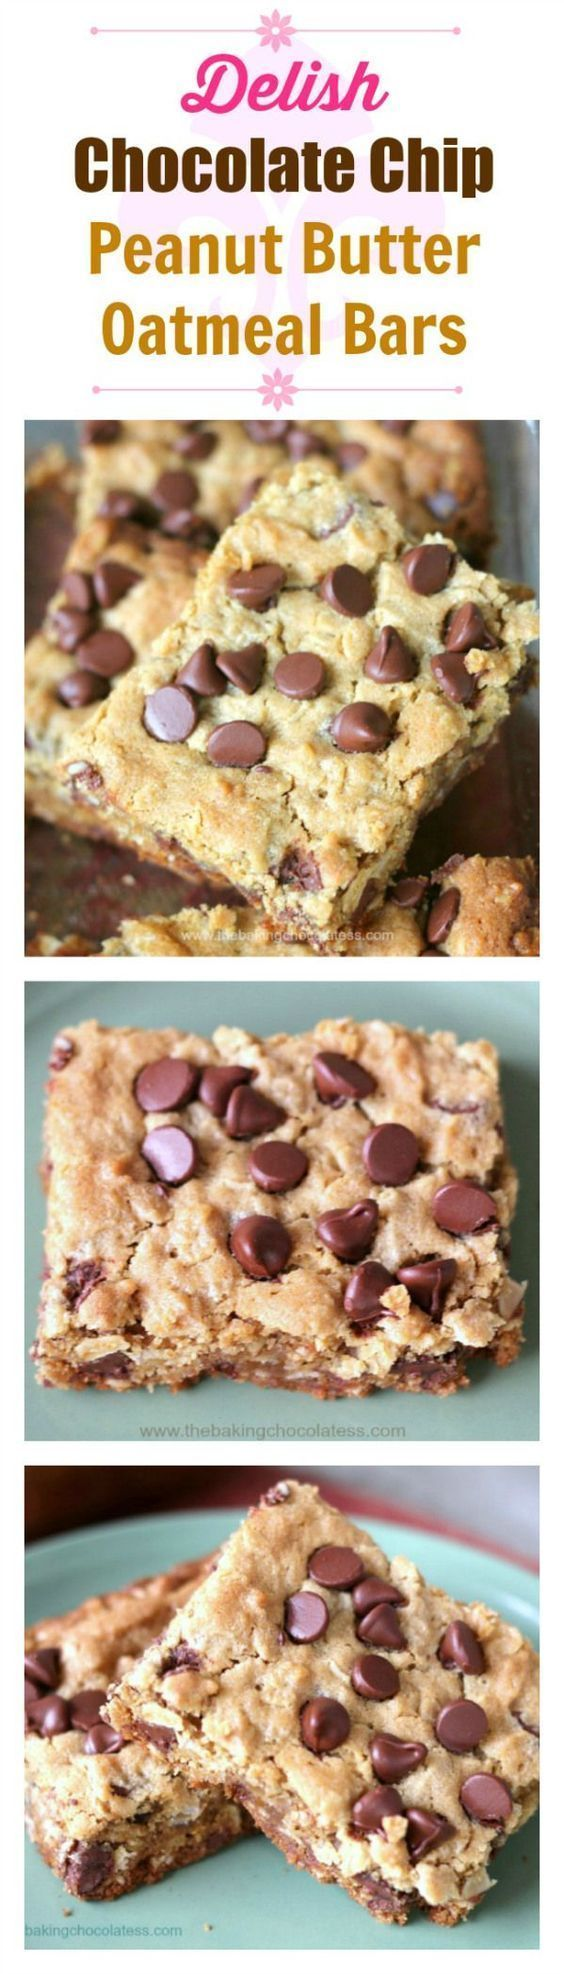 ... bars chocolate chips peanut butter oatmeal peanut butter bars healthy